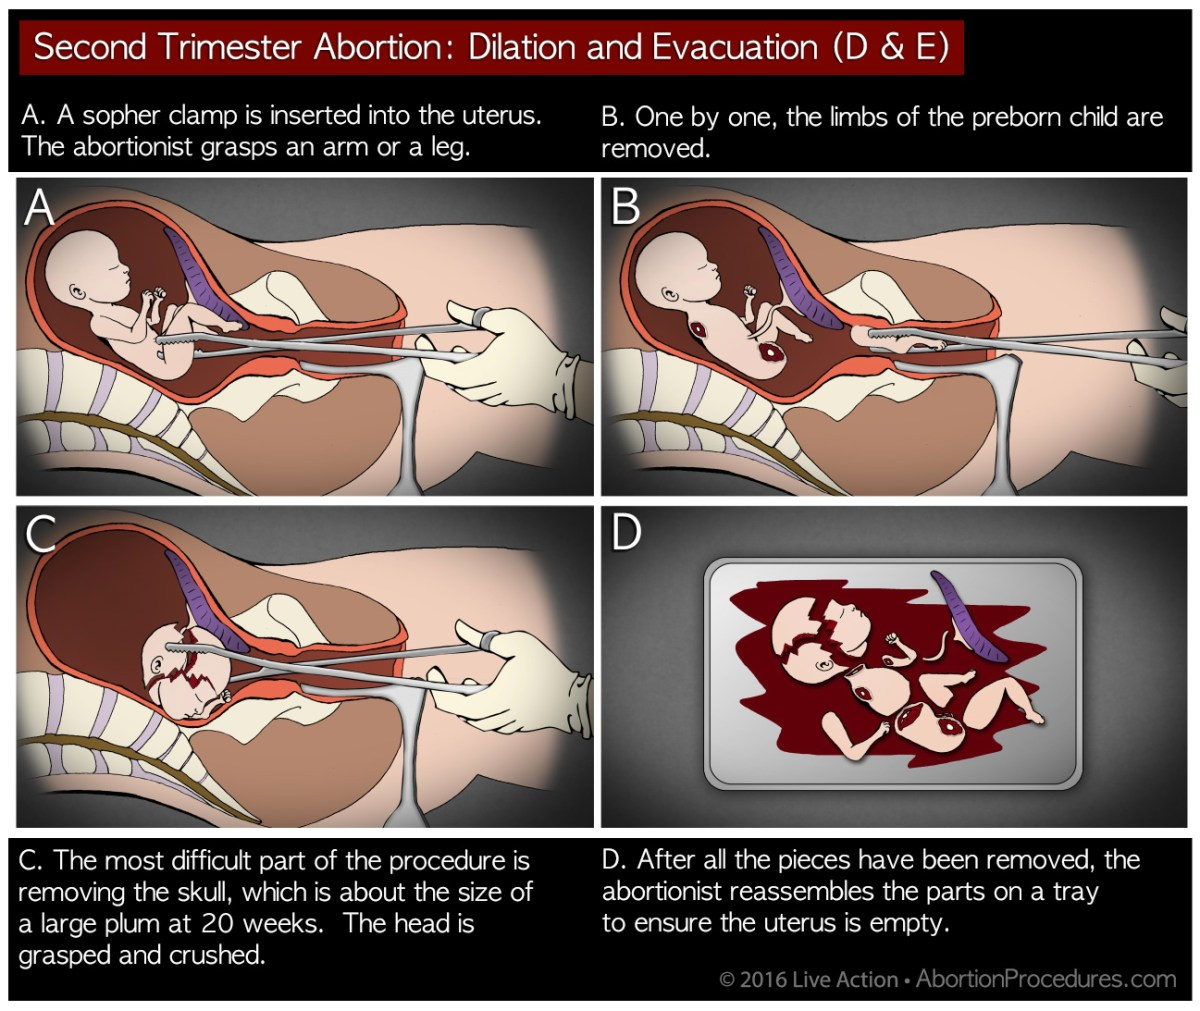 Arkansas governor signs into law a bill banning dismemberment abortions